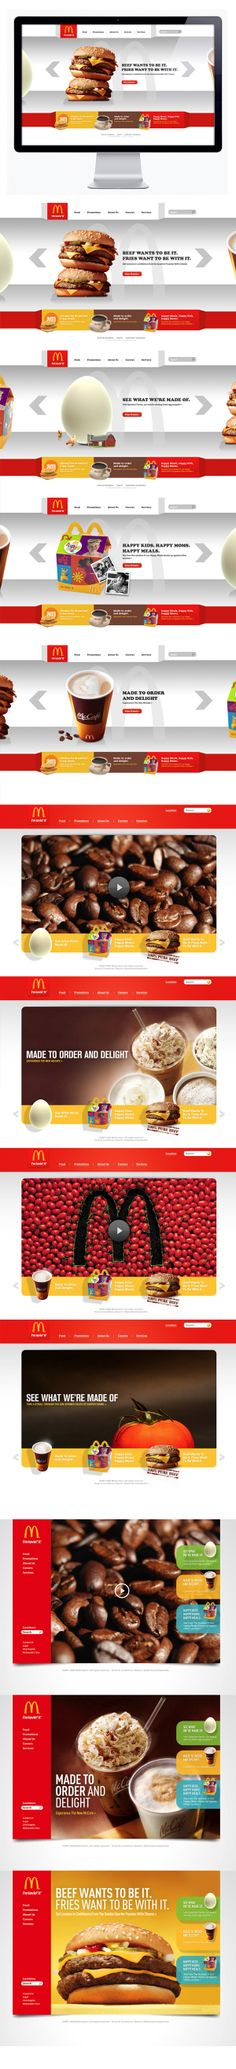 McDonalds by Moosesyrup , via Behance